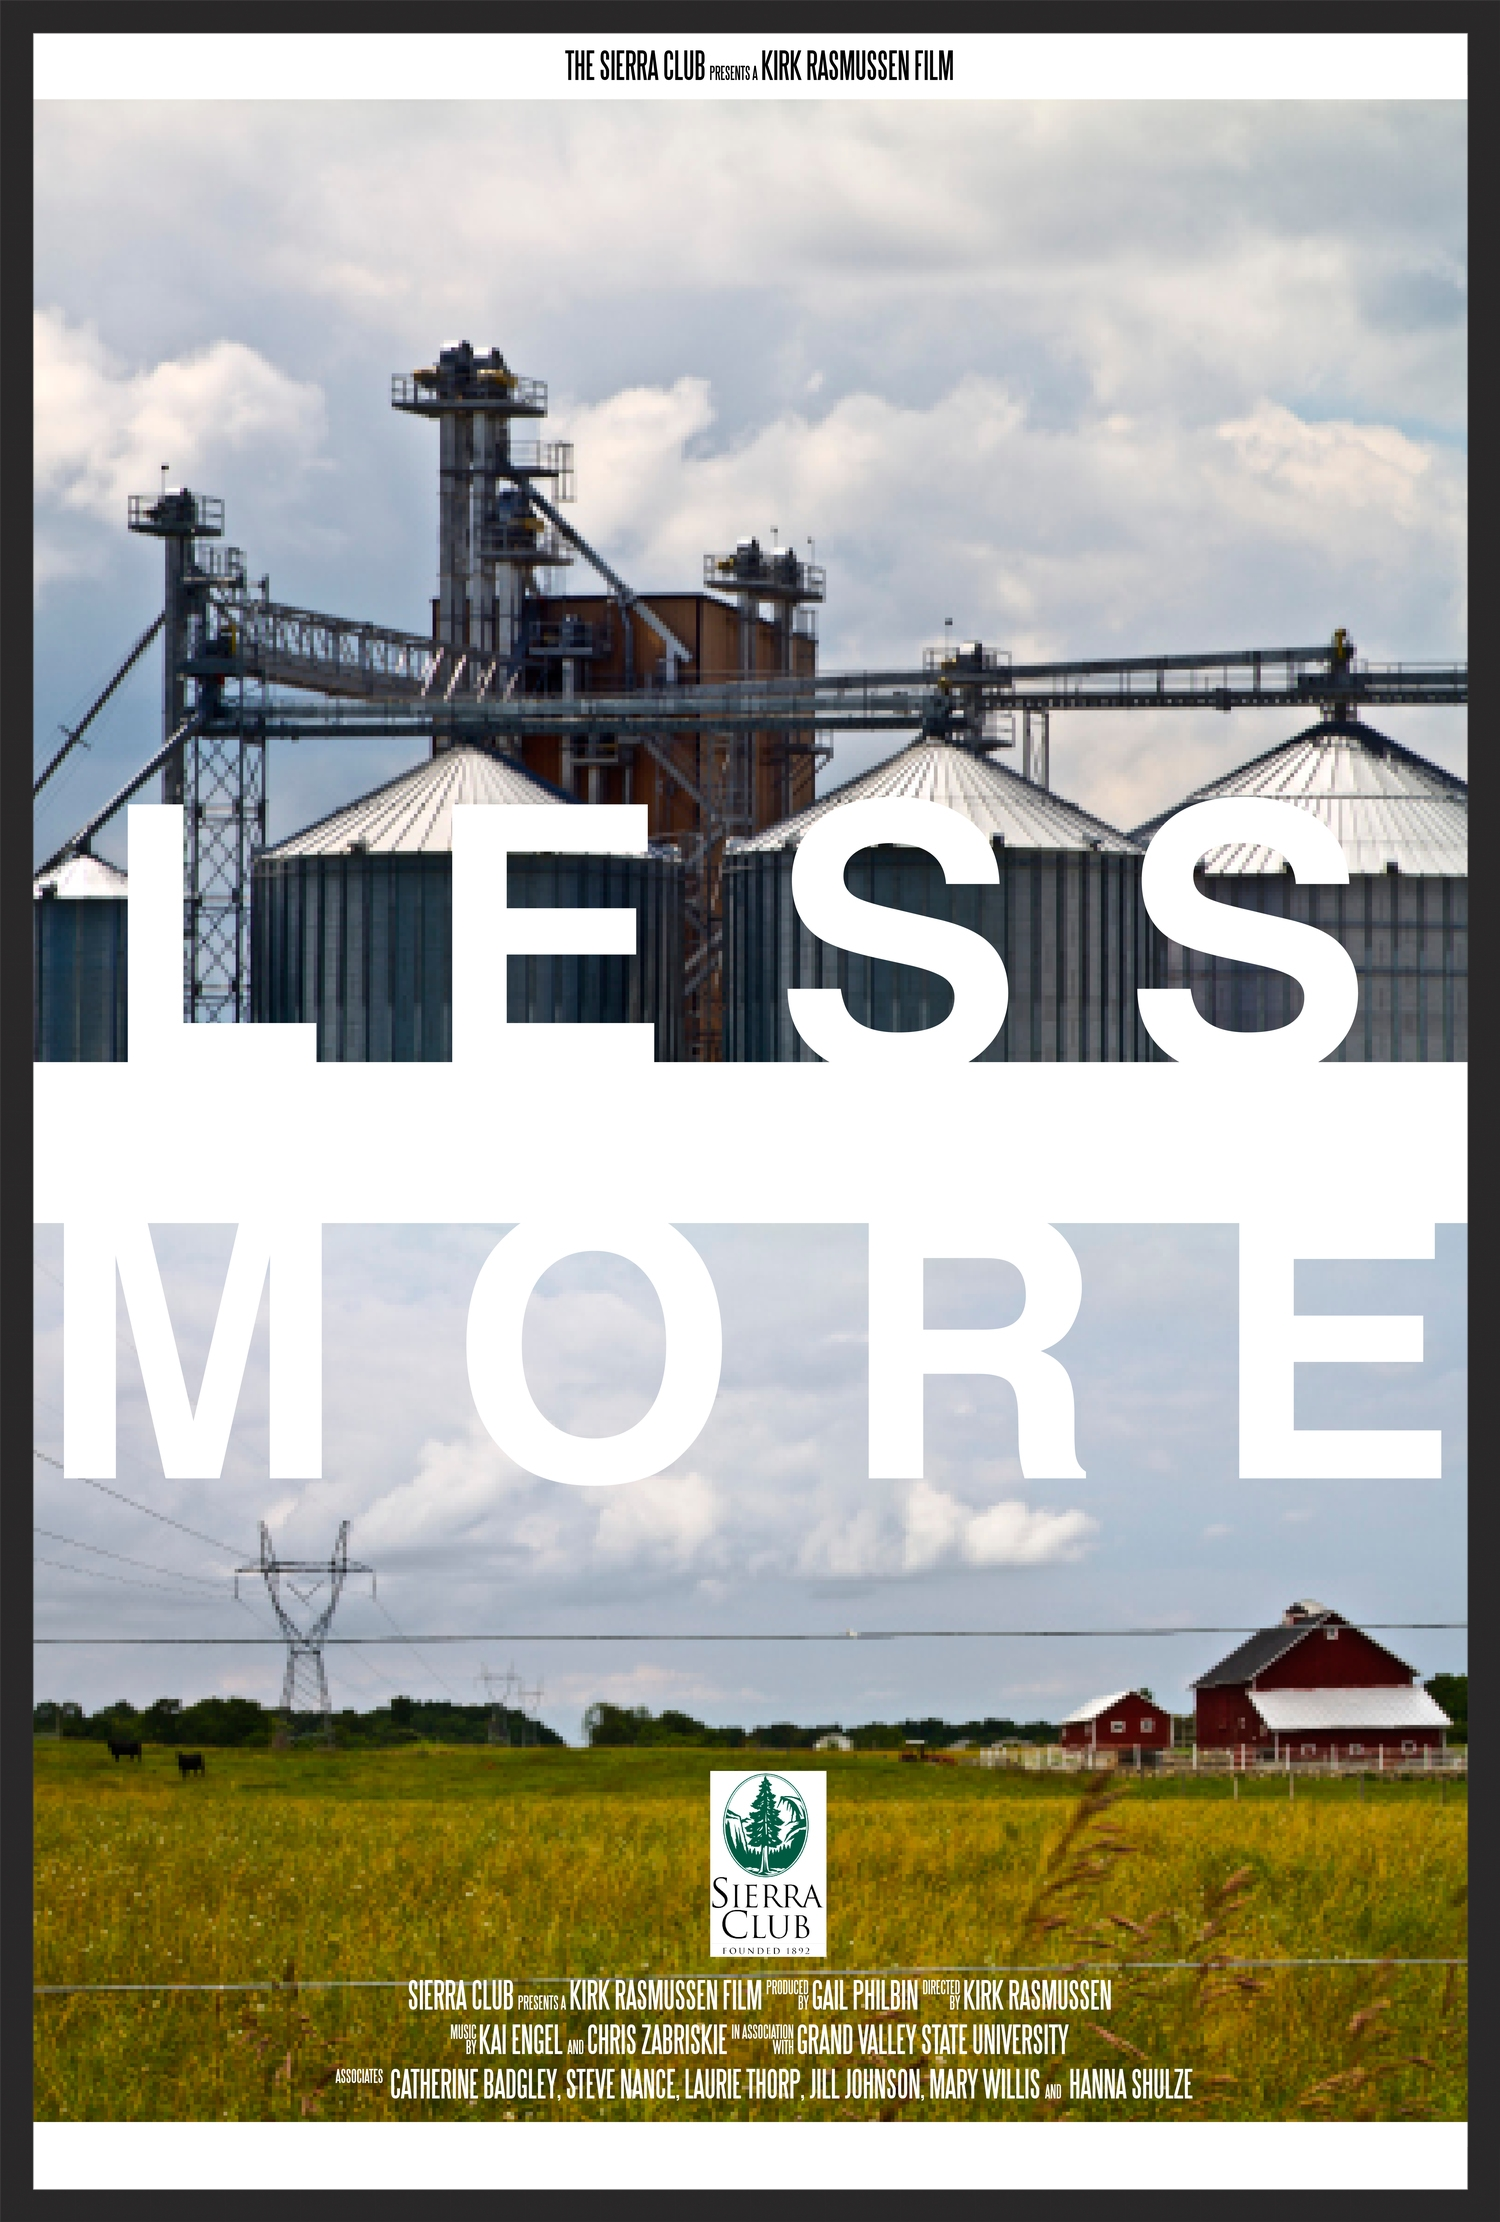 Less = More debut Summer, 2014 at the Sierra Club annual conference in Grand Rapids, Michigan, and has been used as campaign advocacy and distributed in higher-education settings such as; University of Michigan, Grand Valley State University and Michigan State University.